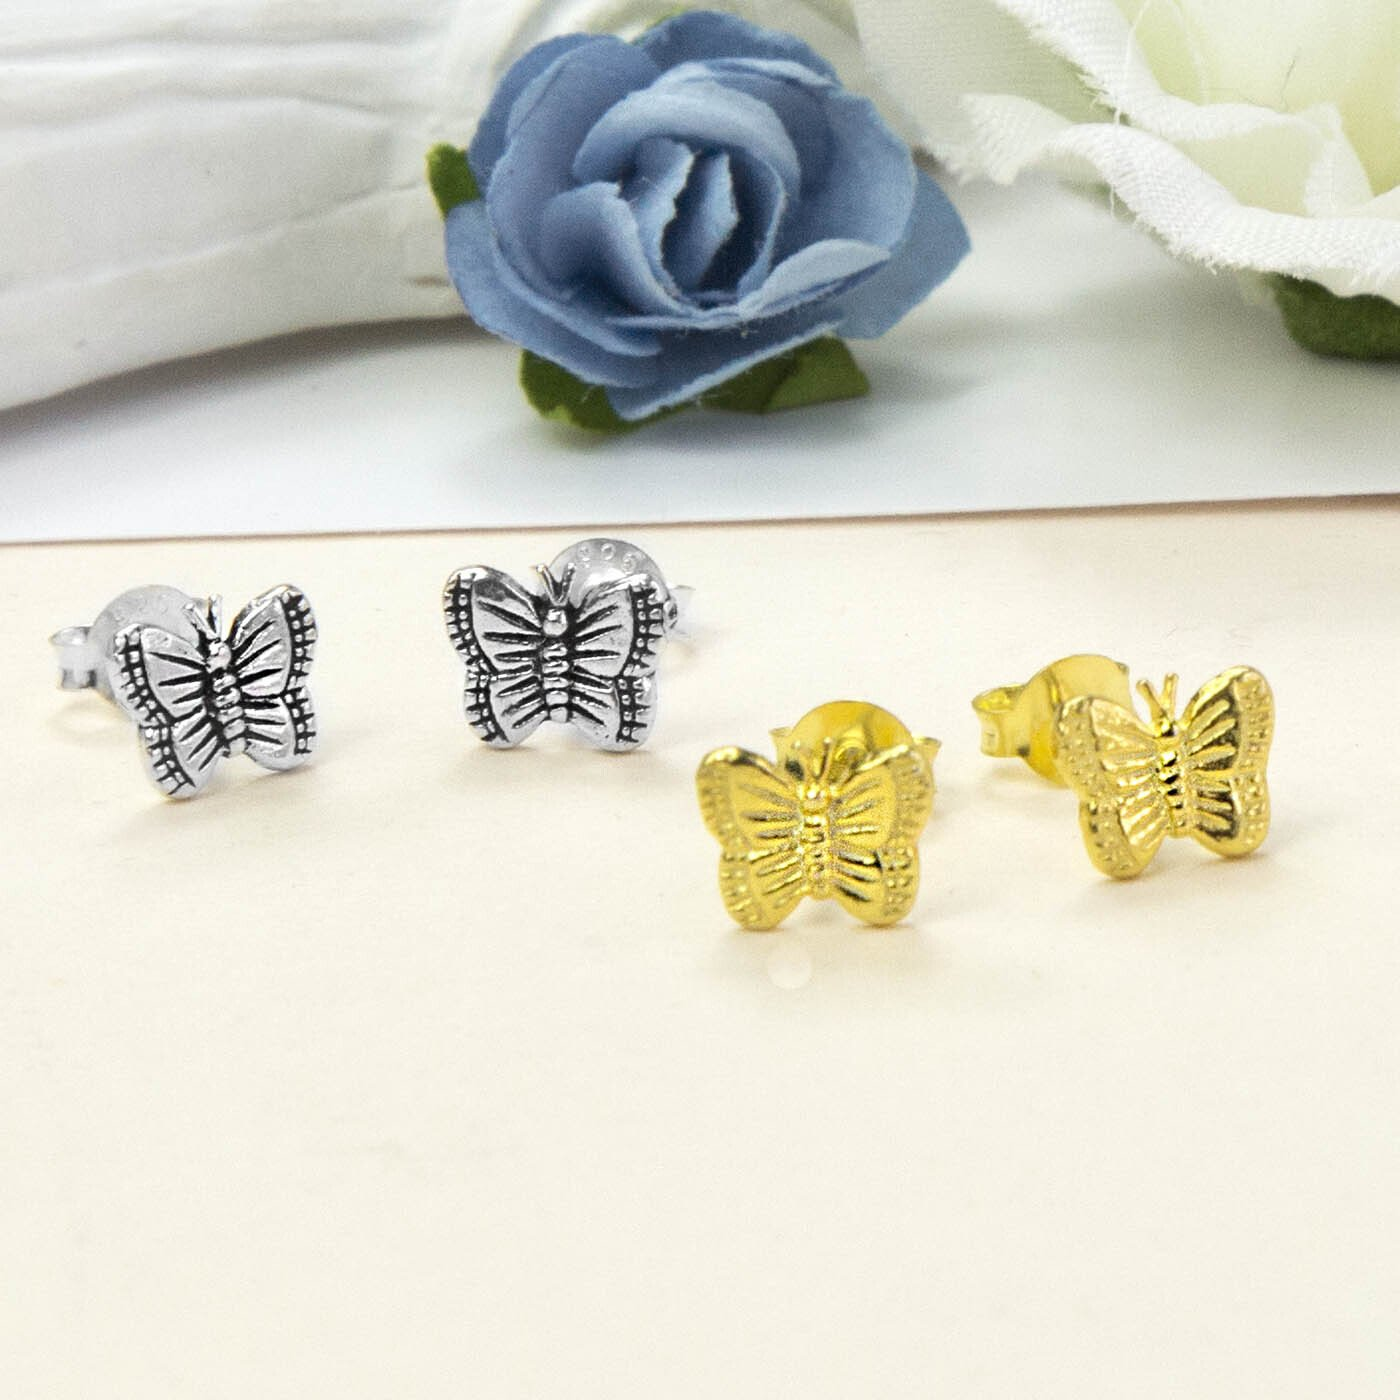 Small Silver Butterfly studs on the left and Small Gold Butterfly studs on the right with Blue and white roses in the background